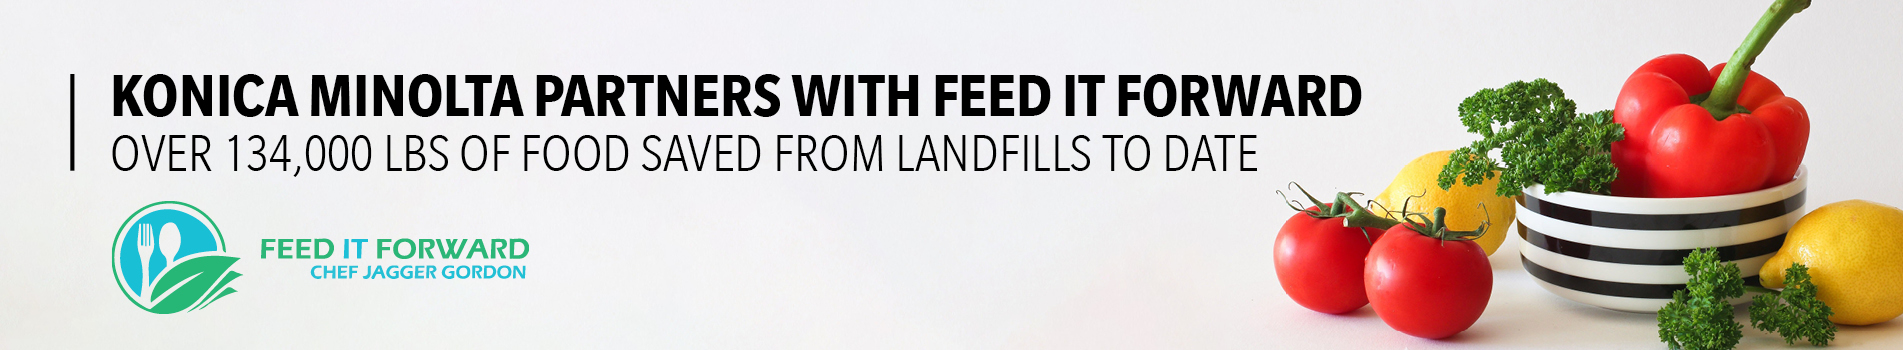 Konica Minolta Partners with Feed it Forward.